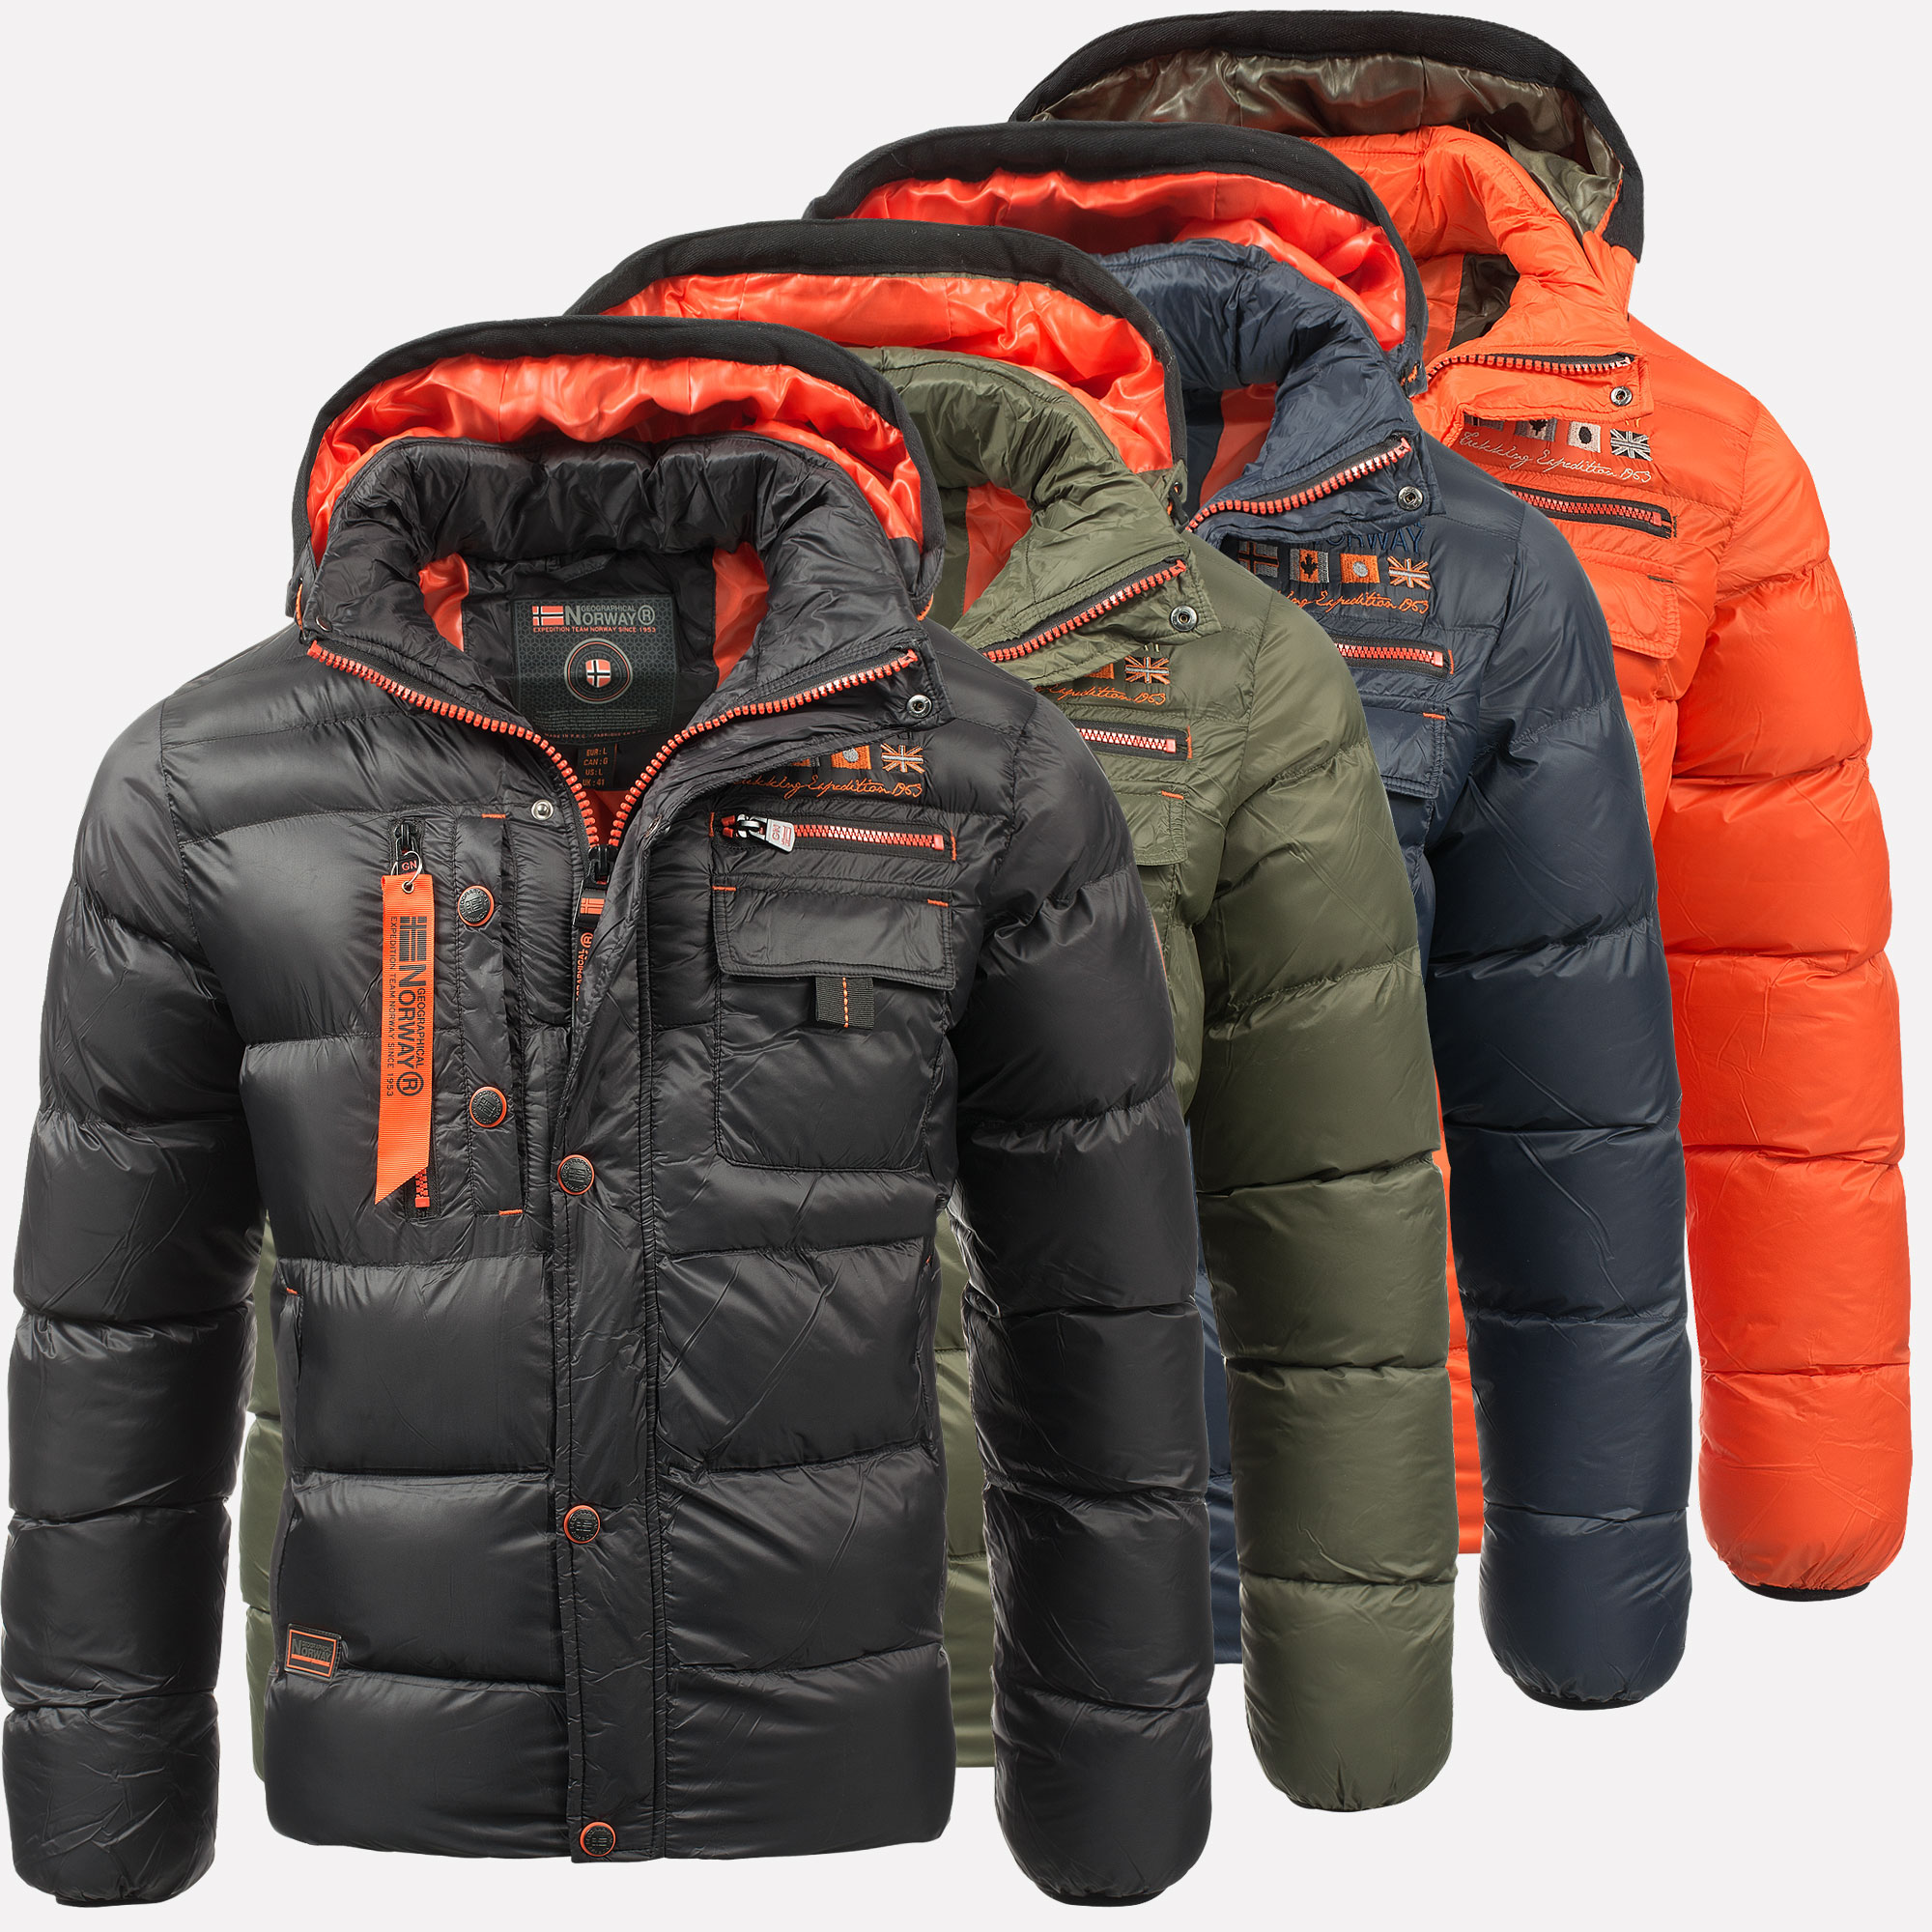 Geographical Norway Warm Designer Mens Winter Quilted Jacket Winter Jacket New | eBay